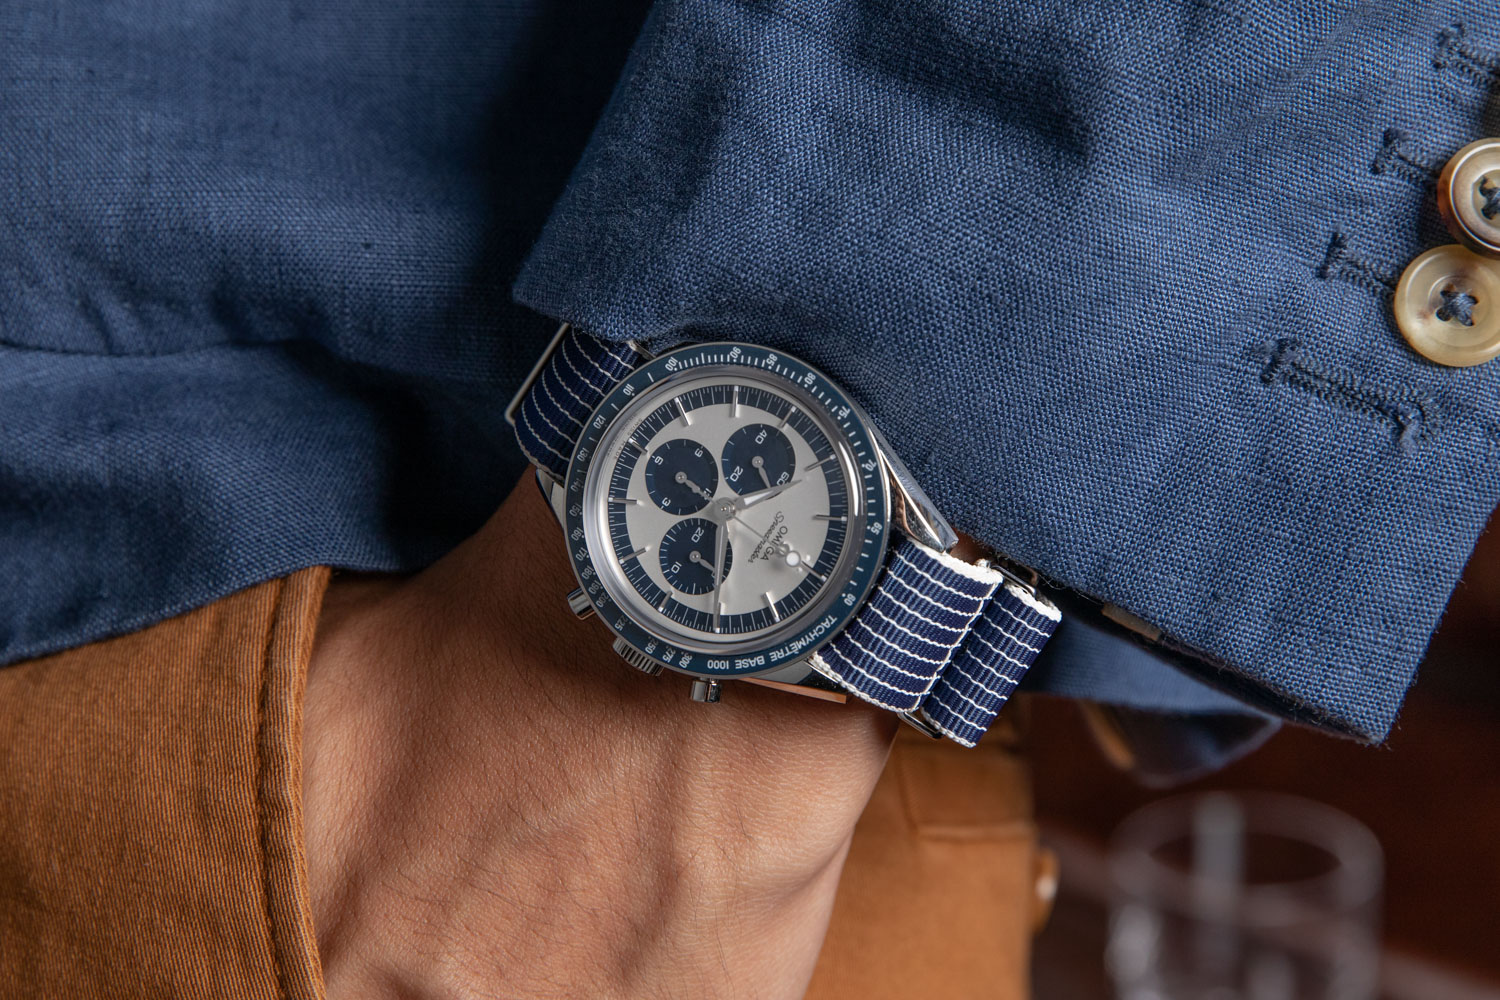 """The Speedmaster """"CK2998"""" Limited Edition launched in 2016 was made in a limited run of 2998 pieces; here we've put the watch on a NATO-type strap from Omega's own collection of straps and accessories (©Revolution)"""